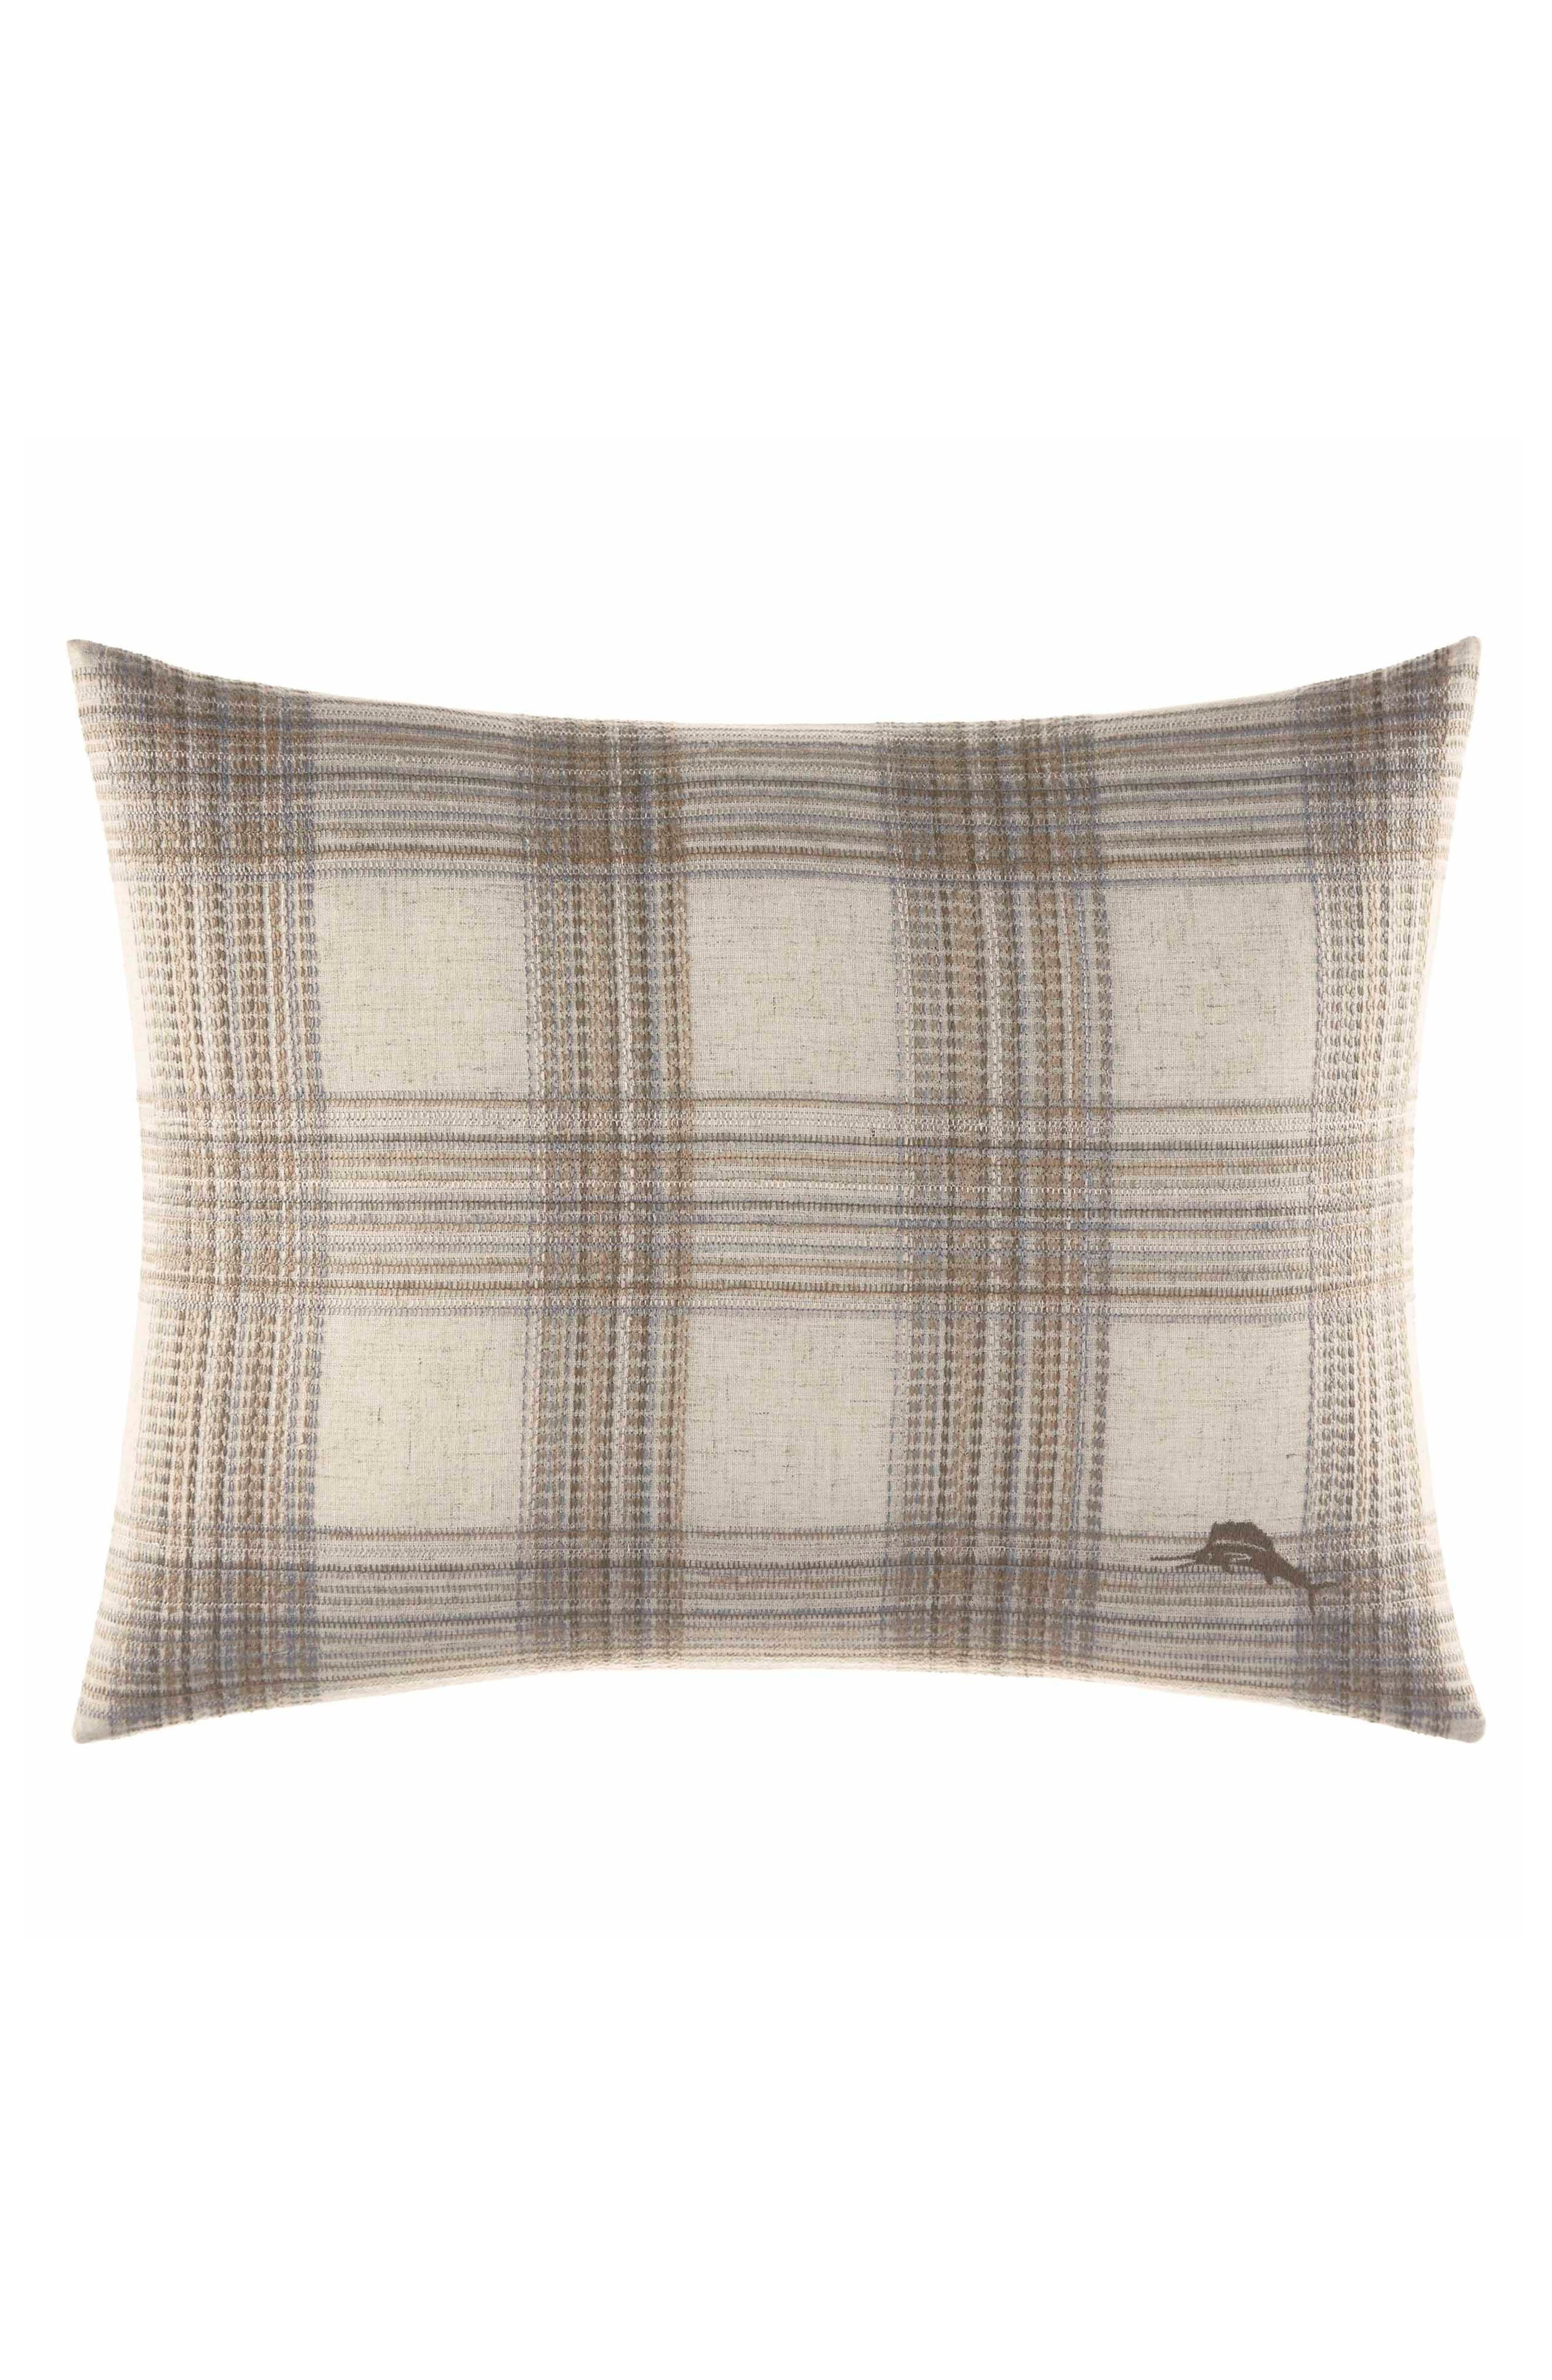 Raffia Palms Woven Pillow,                             Main thumbnail 1, color,                             PEWTER